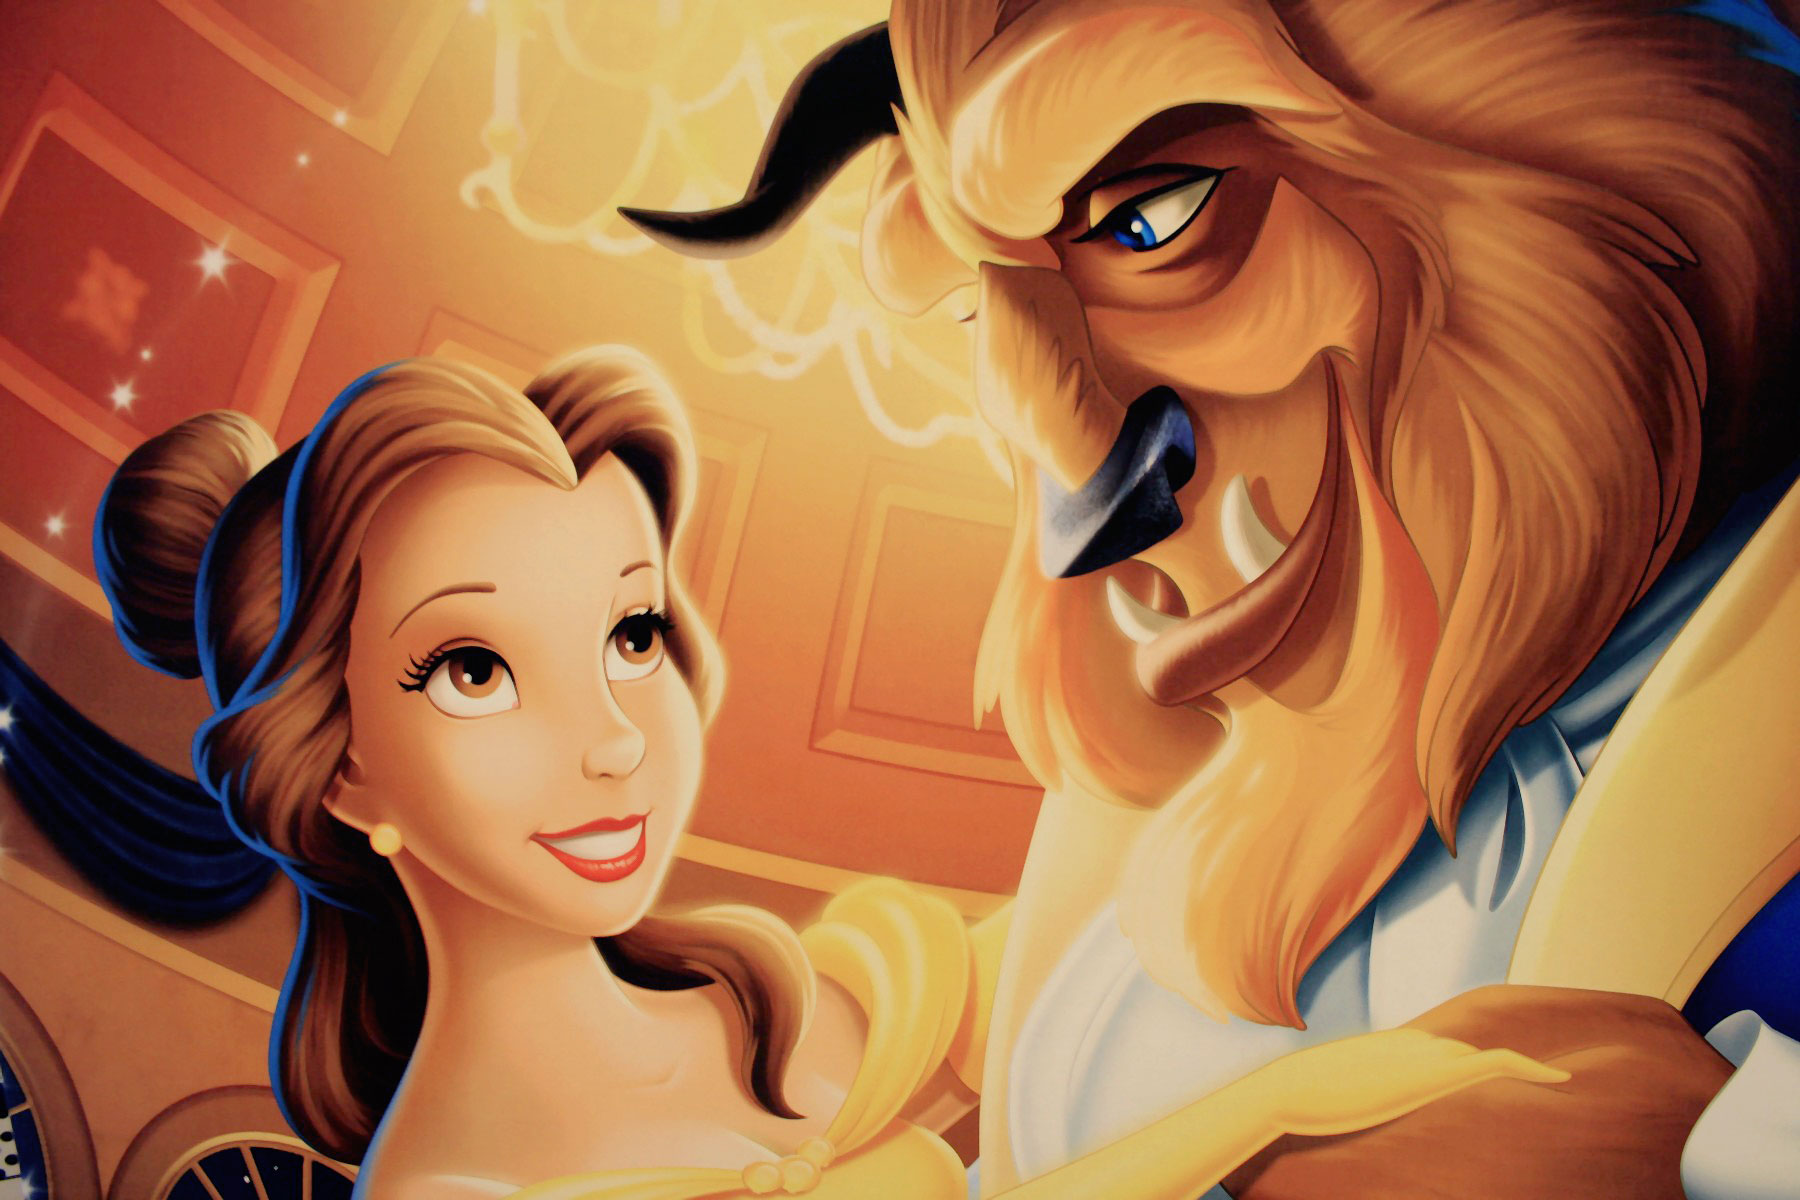 beauty and the beast vs la belle et la b atilde ordf te disneyfied or beauty and the beast vs la belle et la batildeordfte